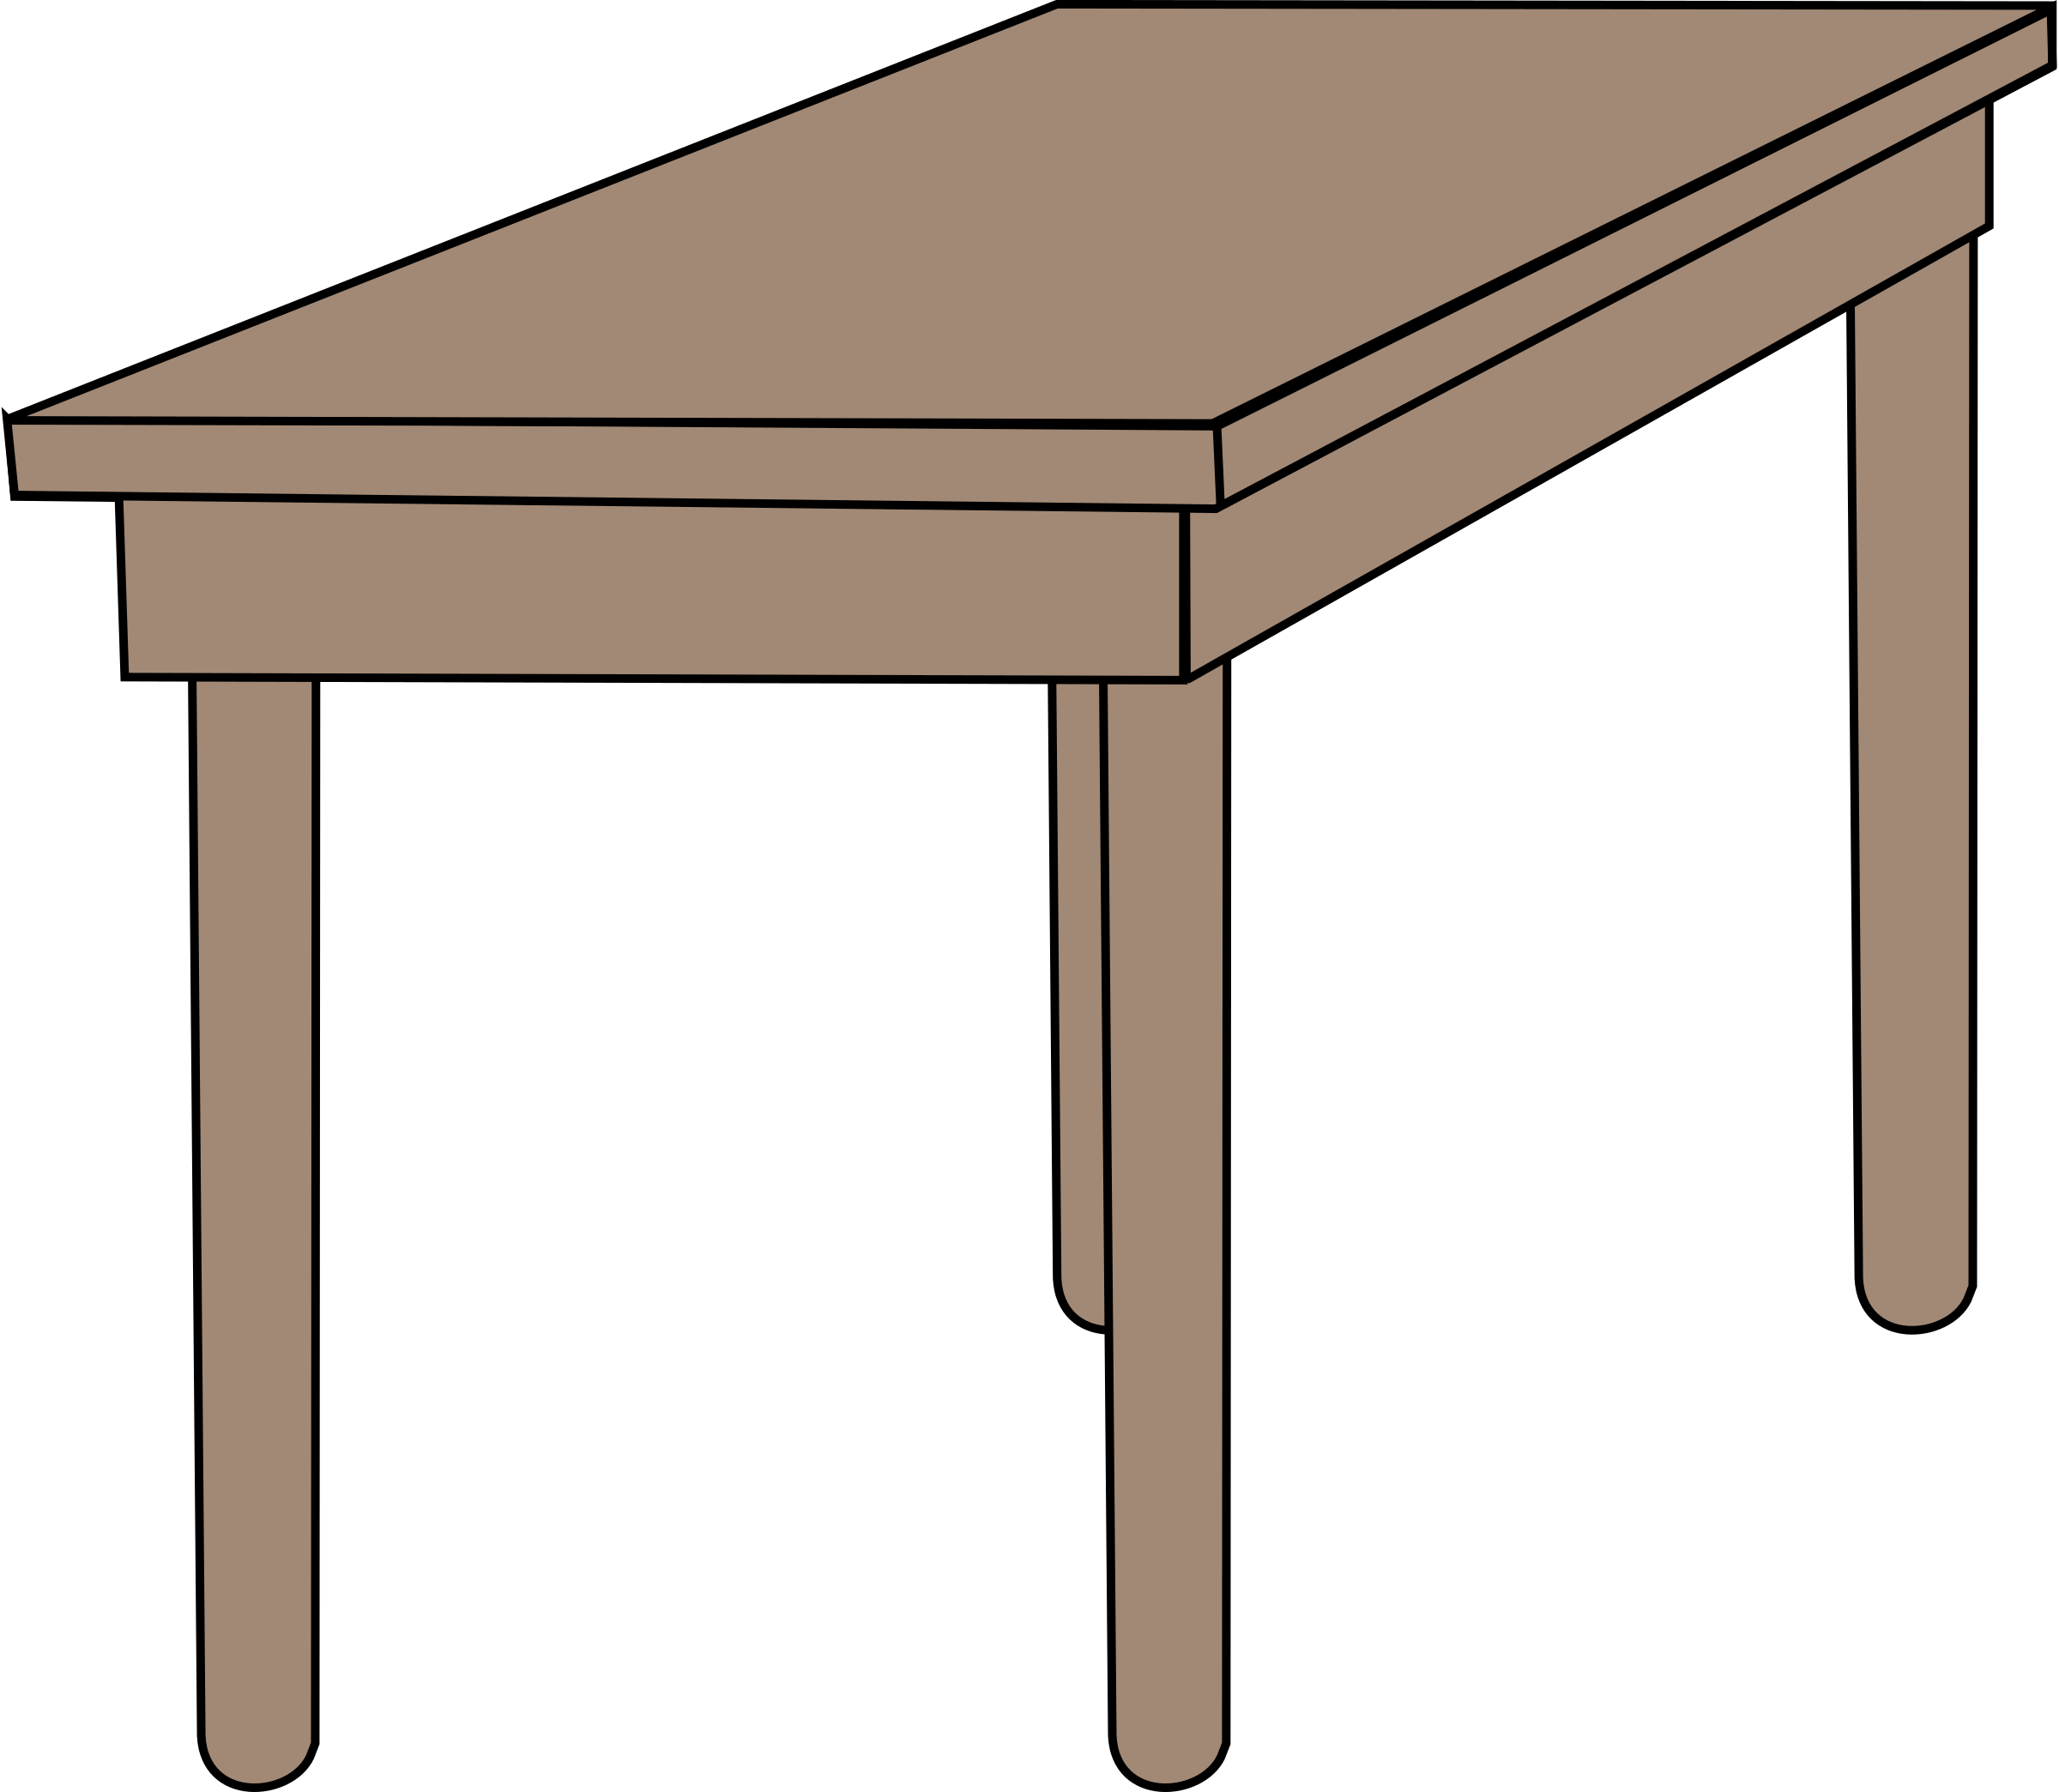 Furniture clipart une. Student desk icons png